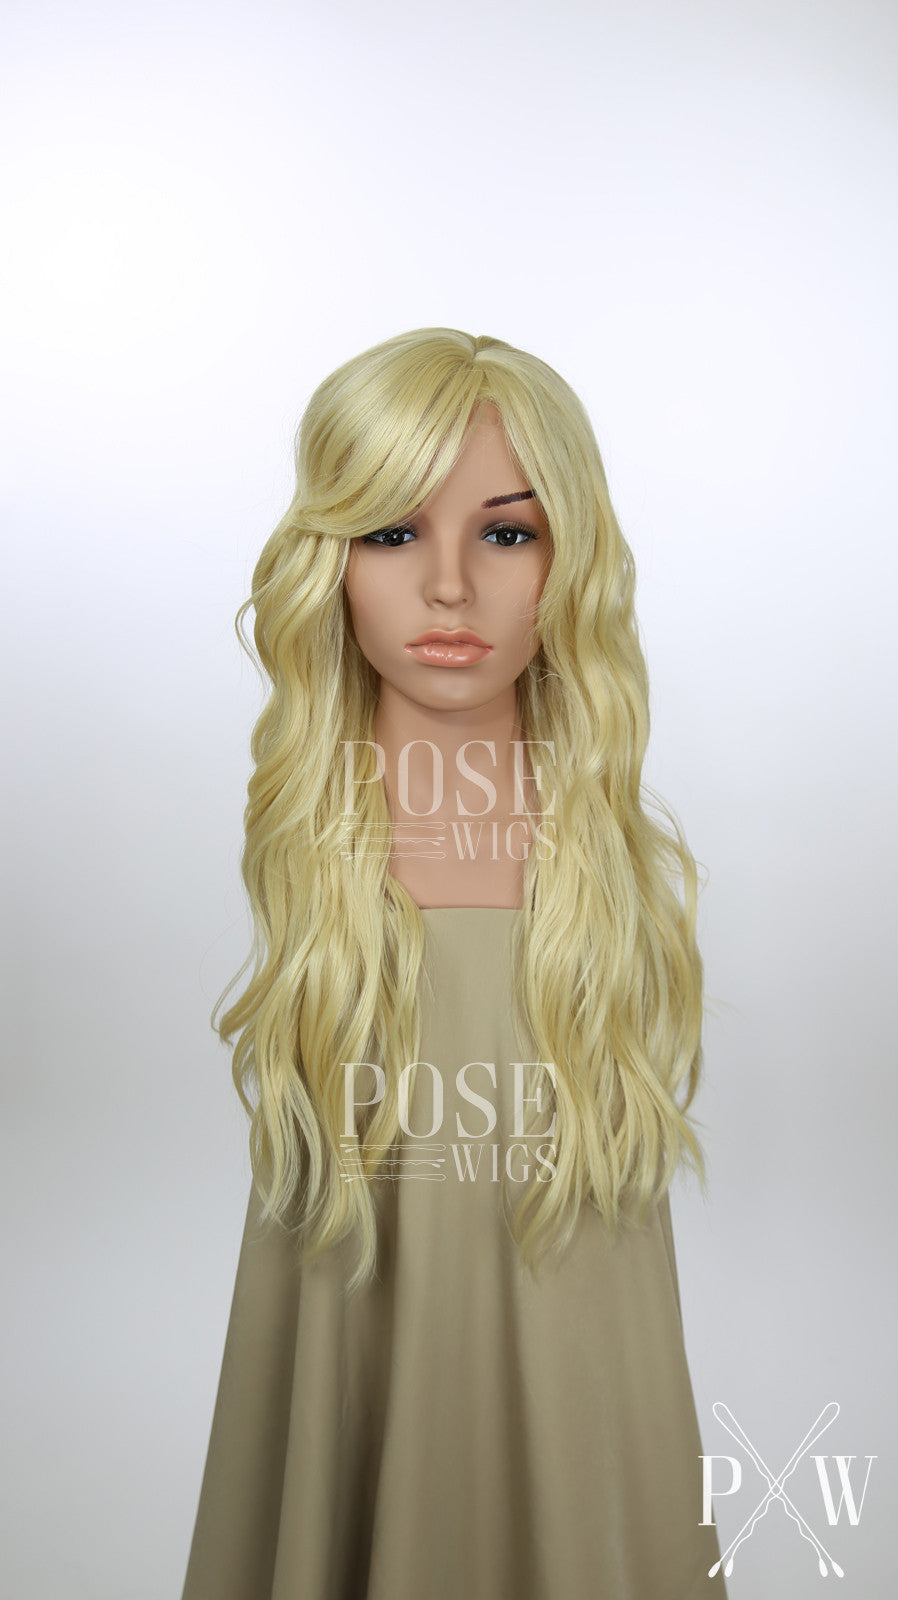 Blonde Long Curly Hair with Bangs Fashion Wig - Large 23